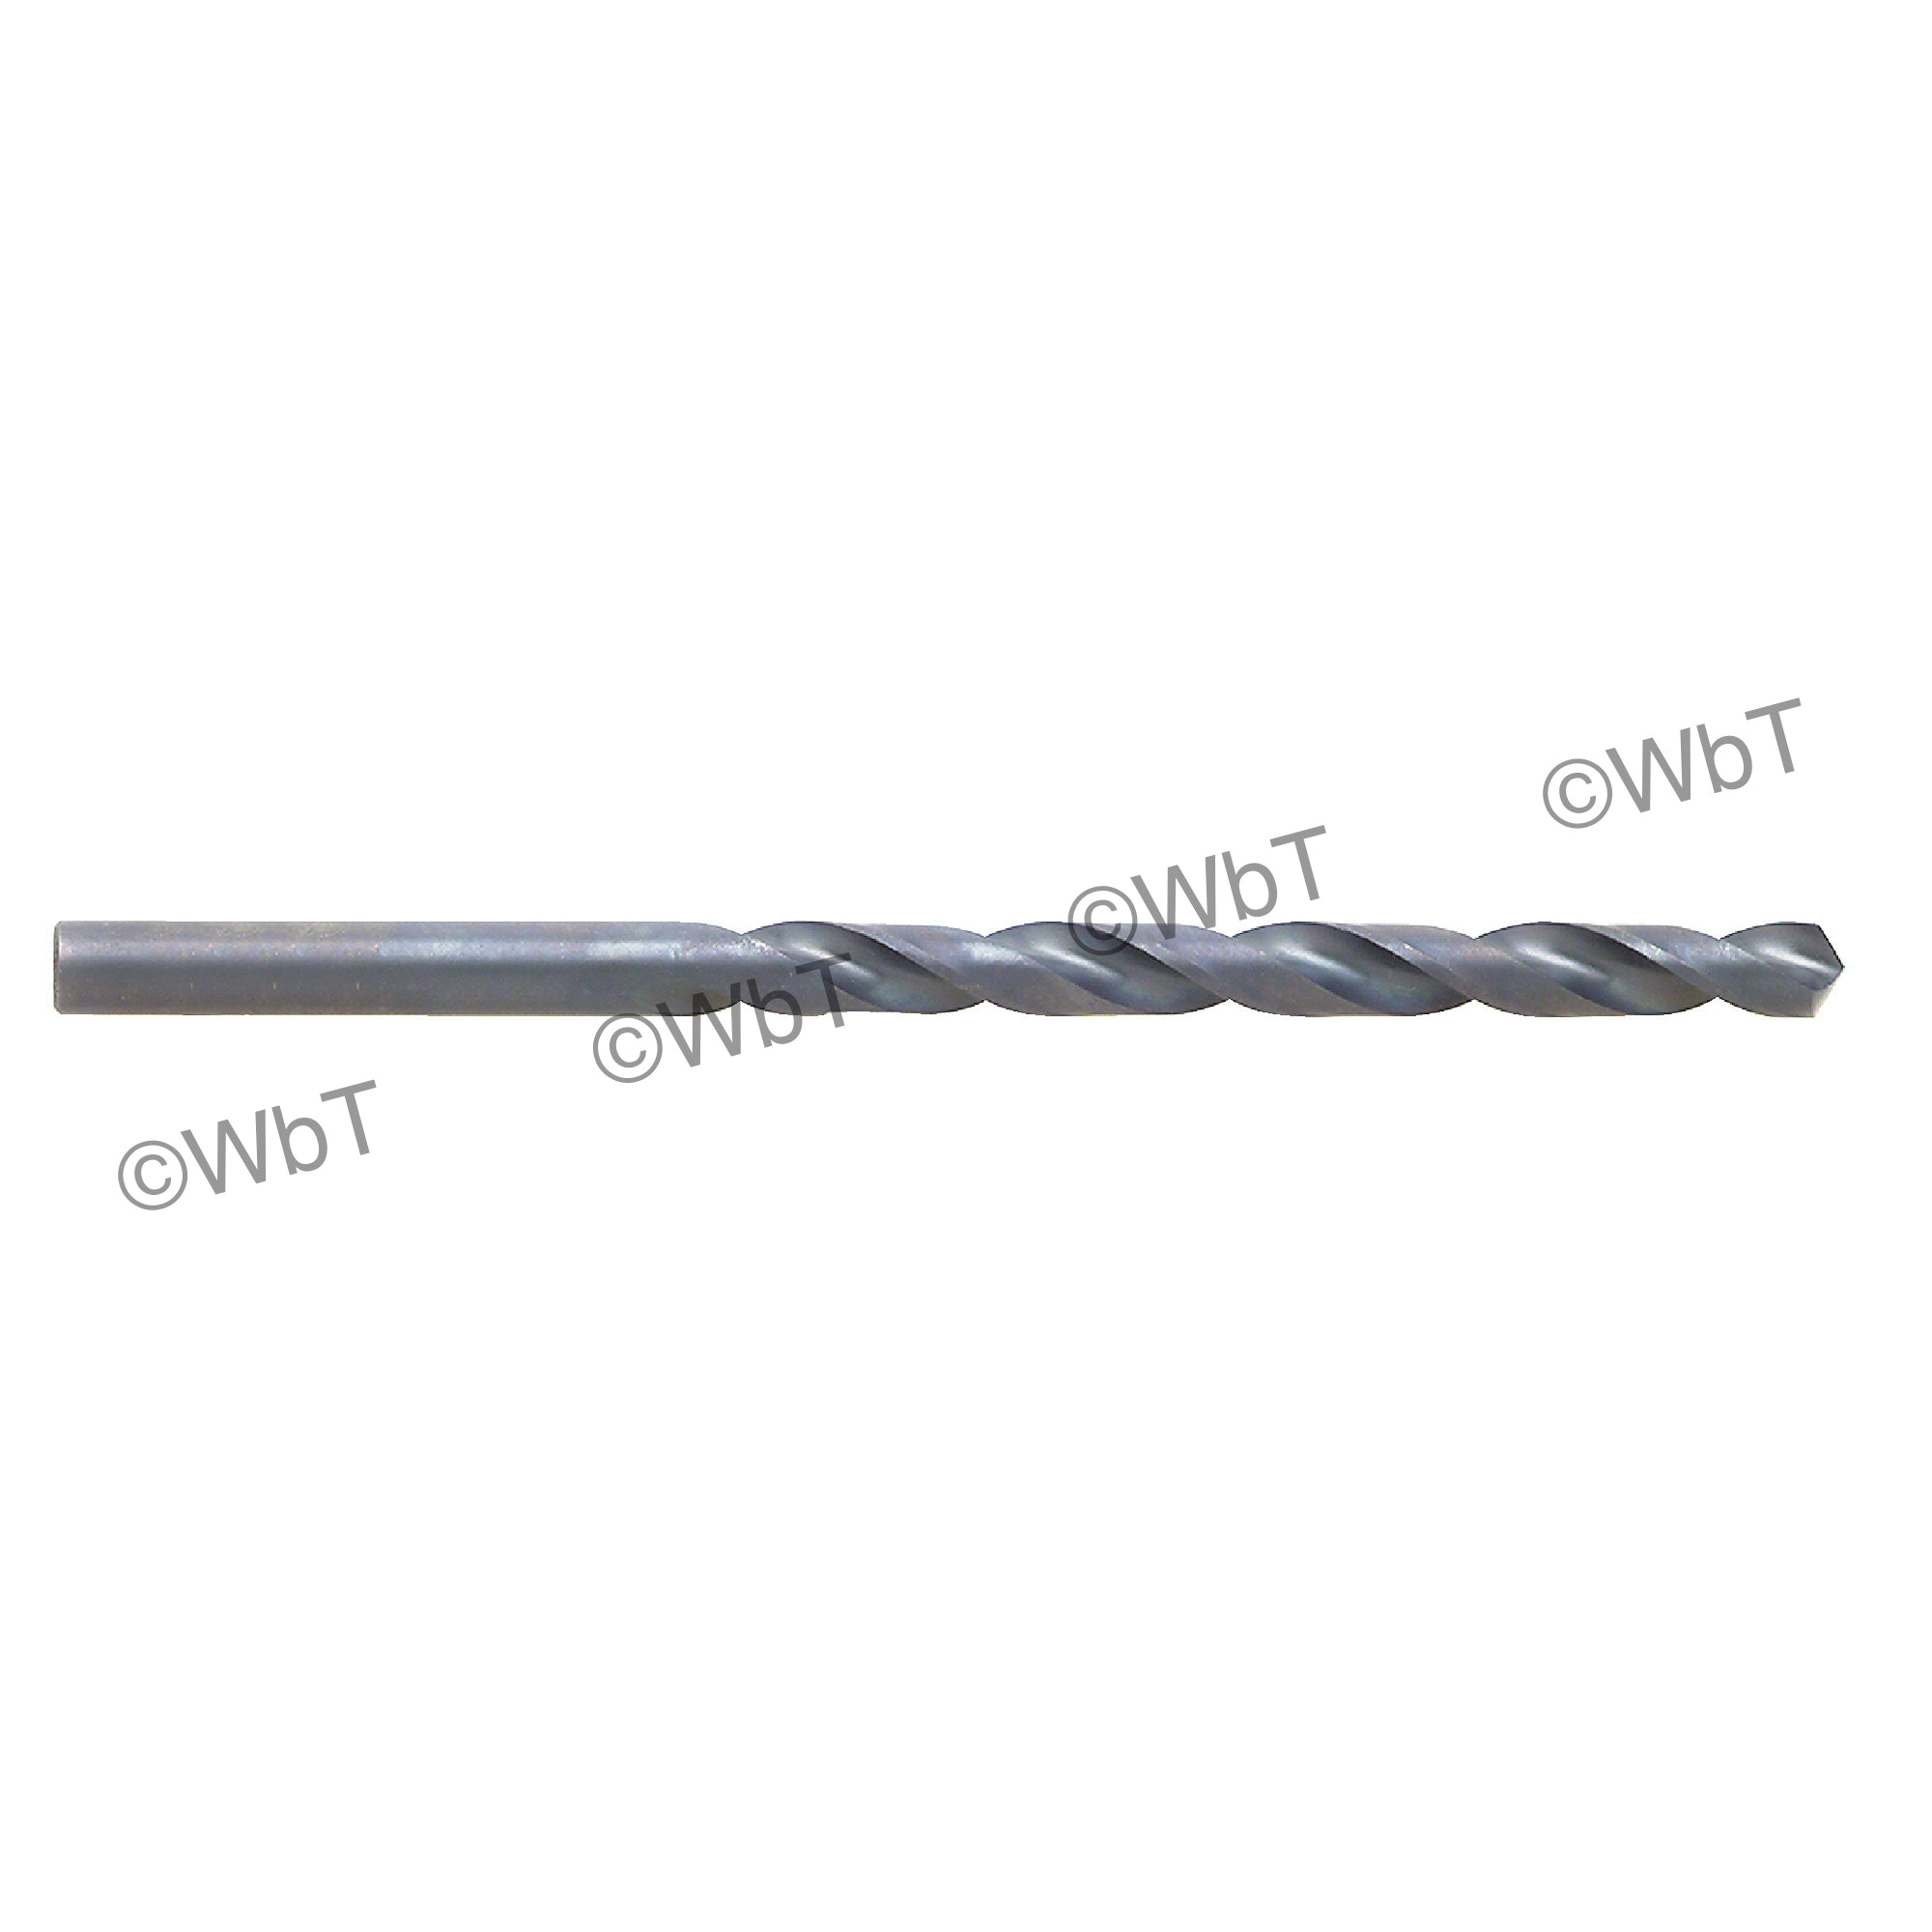 TTC 01-001-432 A1-MG Surface Treated Jobber Length Drill Bit, 1/2 in Drill - Fraction, 0.5 in Drill - Decimal Inch, 118 deg Point, HSS, Black Oxide